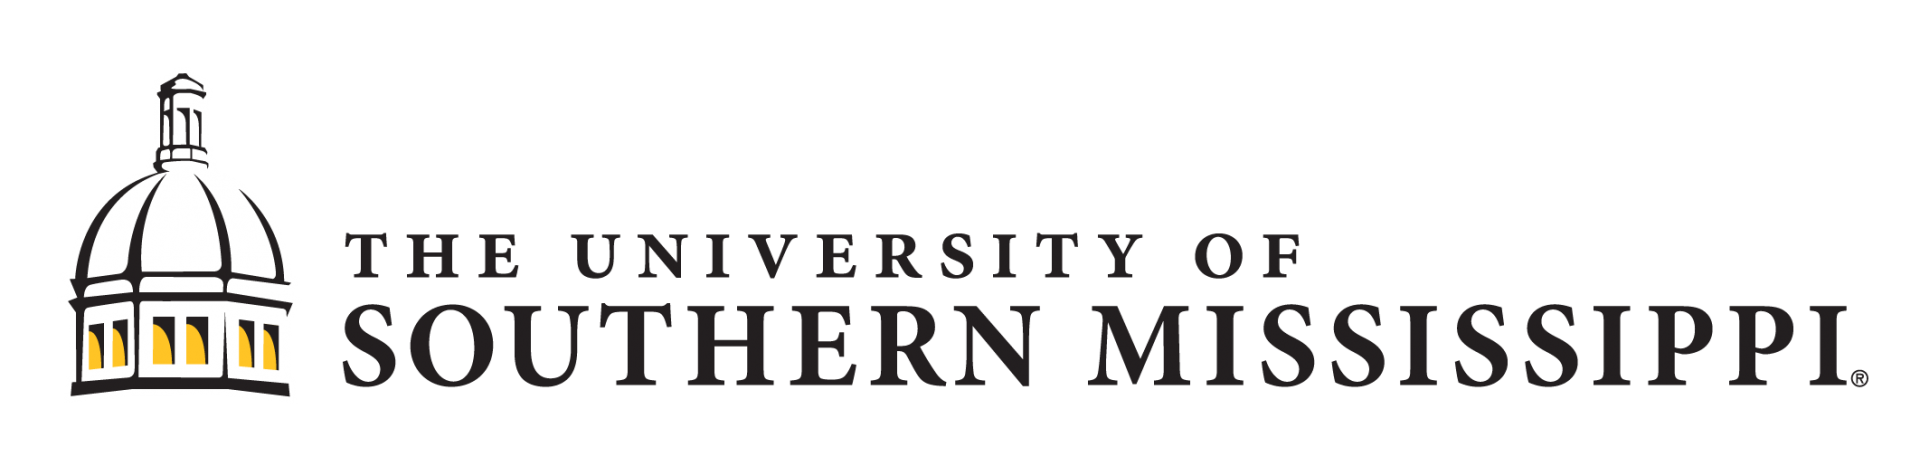 Horizontal logo for The University of Southern Mississippi